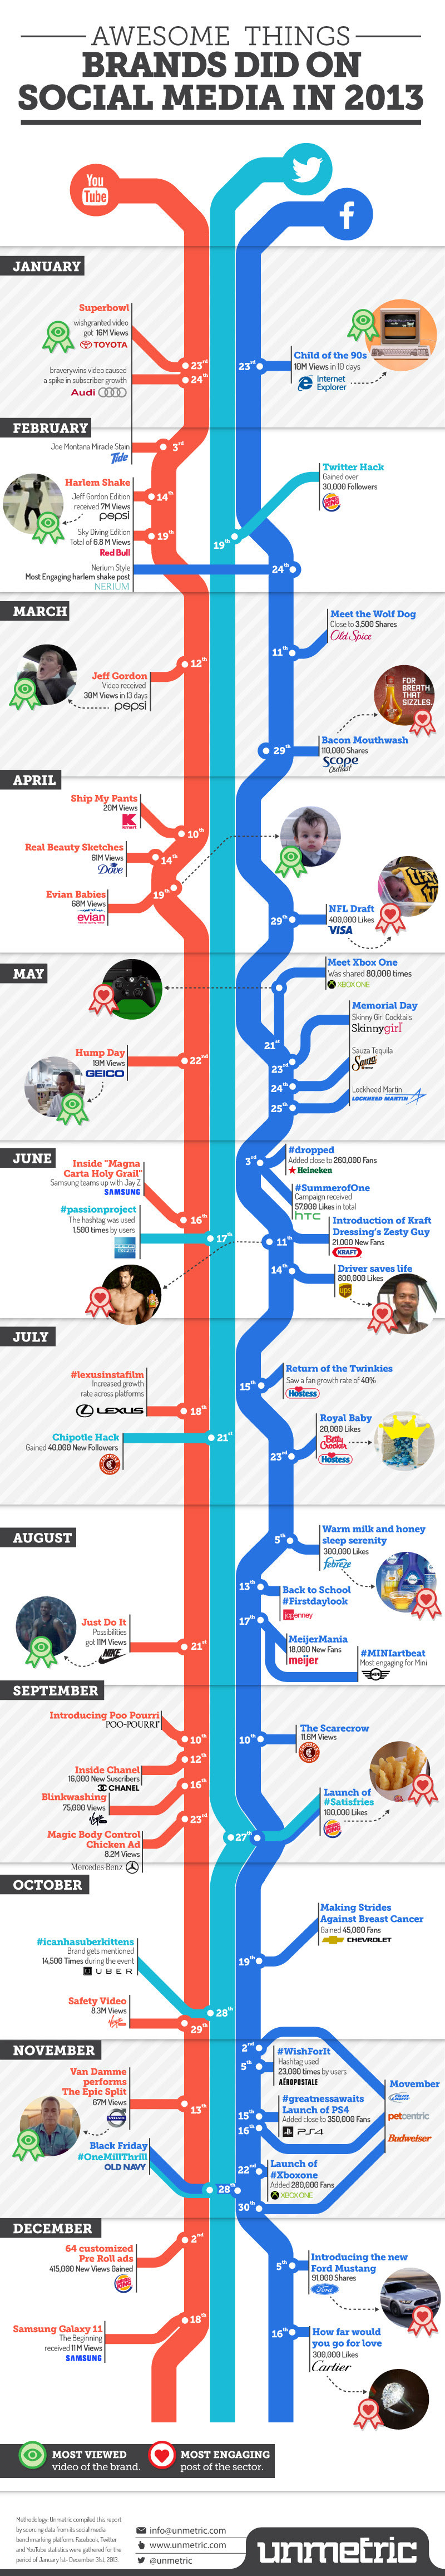 Social Media Events That Went Viral In 2013 - infographic